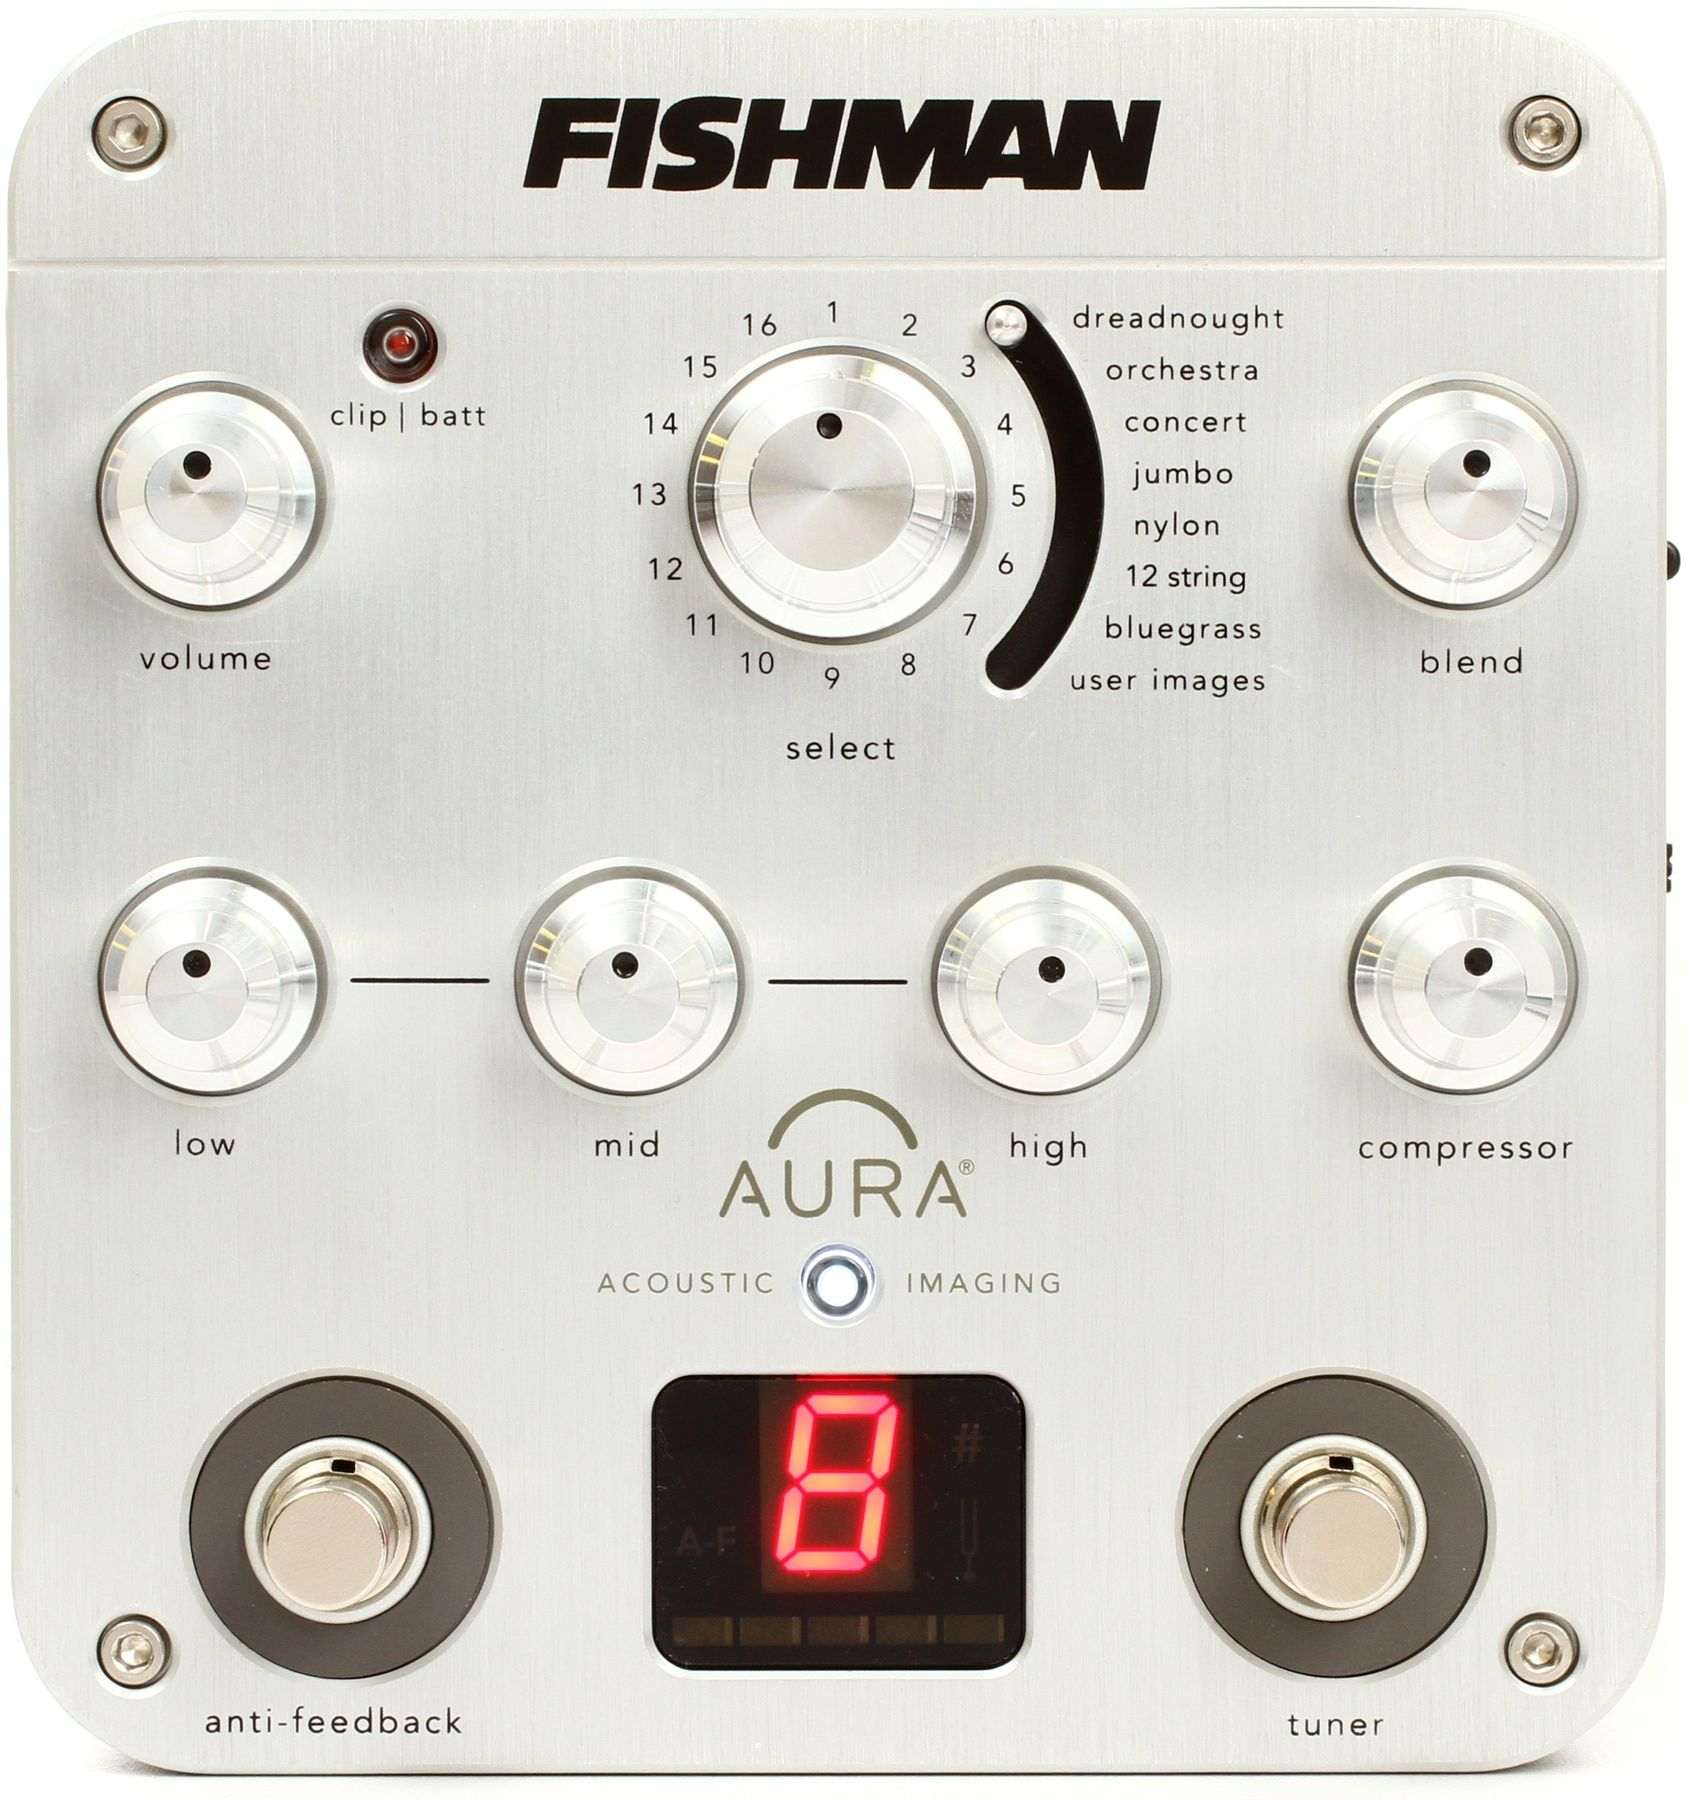 Fishman Aura Spectrum Di Imaging Pedal With D I Acoustic Guitar Effects Guitar Effects Pedals